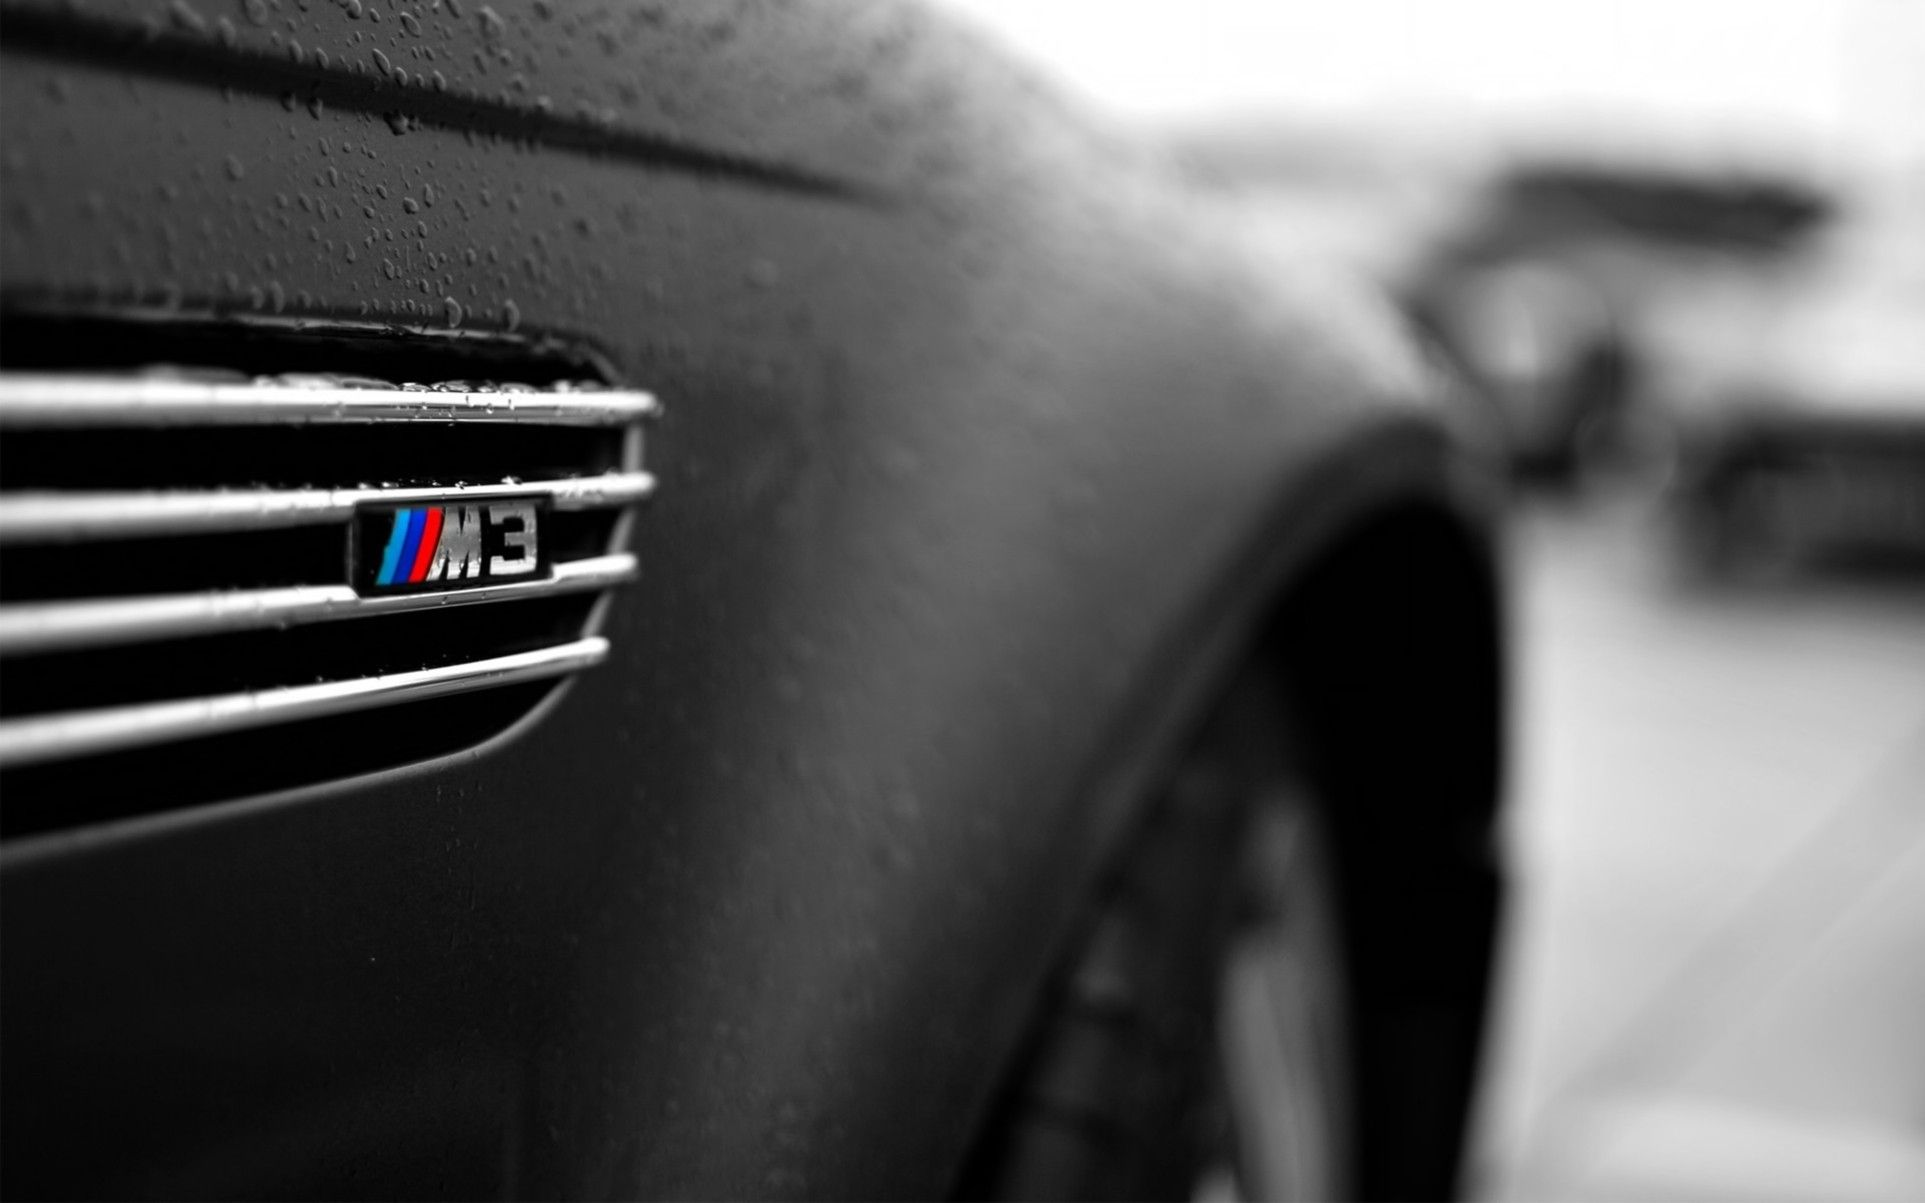 Black and White BMW M3 Logo - close-up, BMW, black, cars, wet, vehicles, selective coloring, logos ...